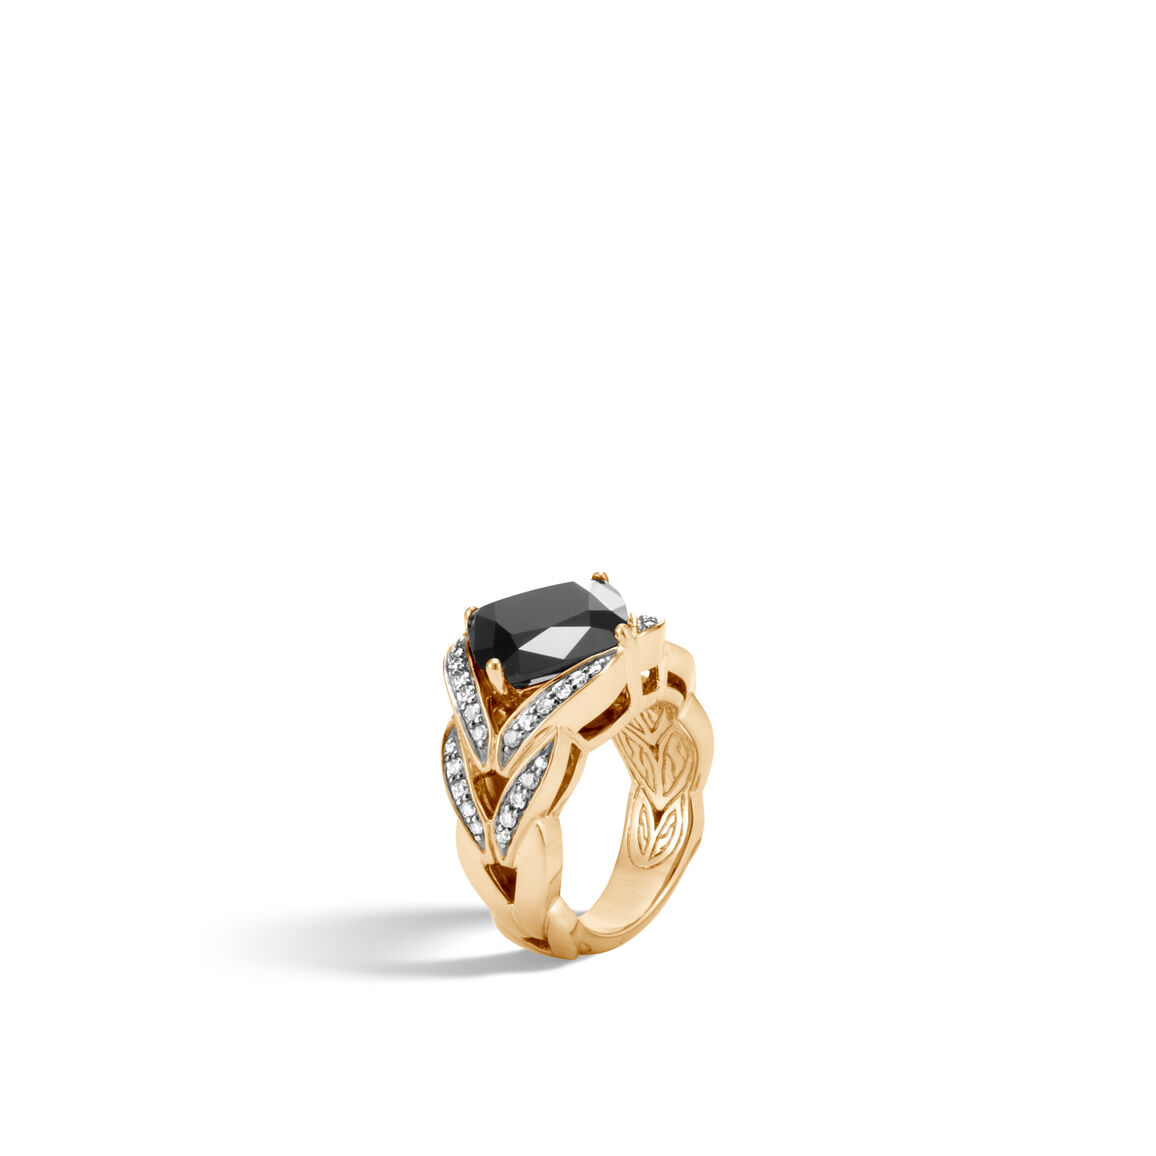 Modern Chain Magic Cut Ring, 18K Gold with Gemstone, Dia